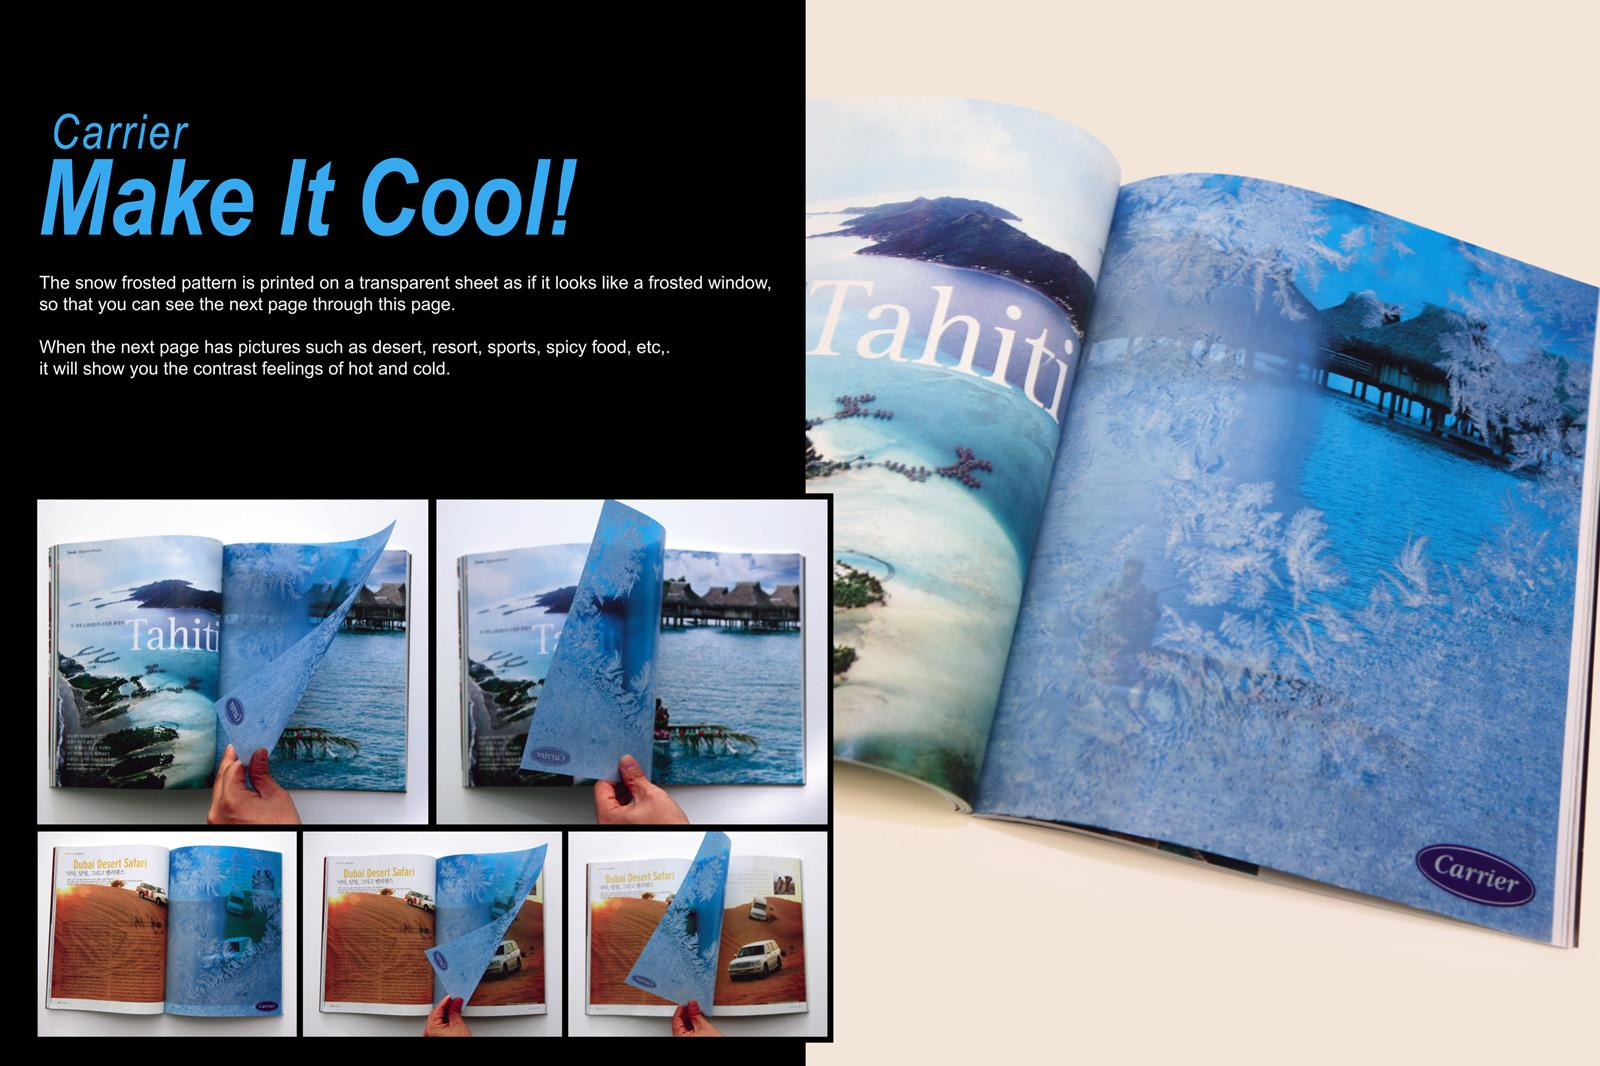 Carrier Print Ad -  Make it Cool, Transparent press